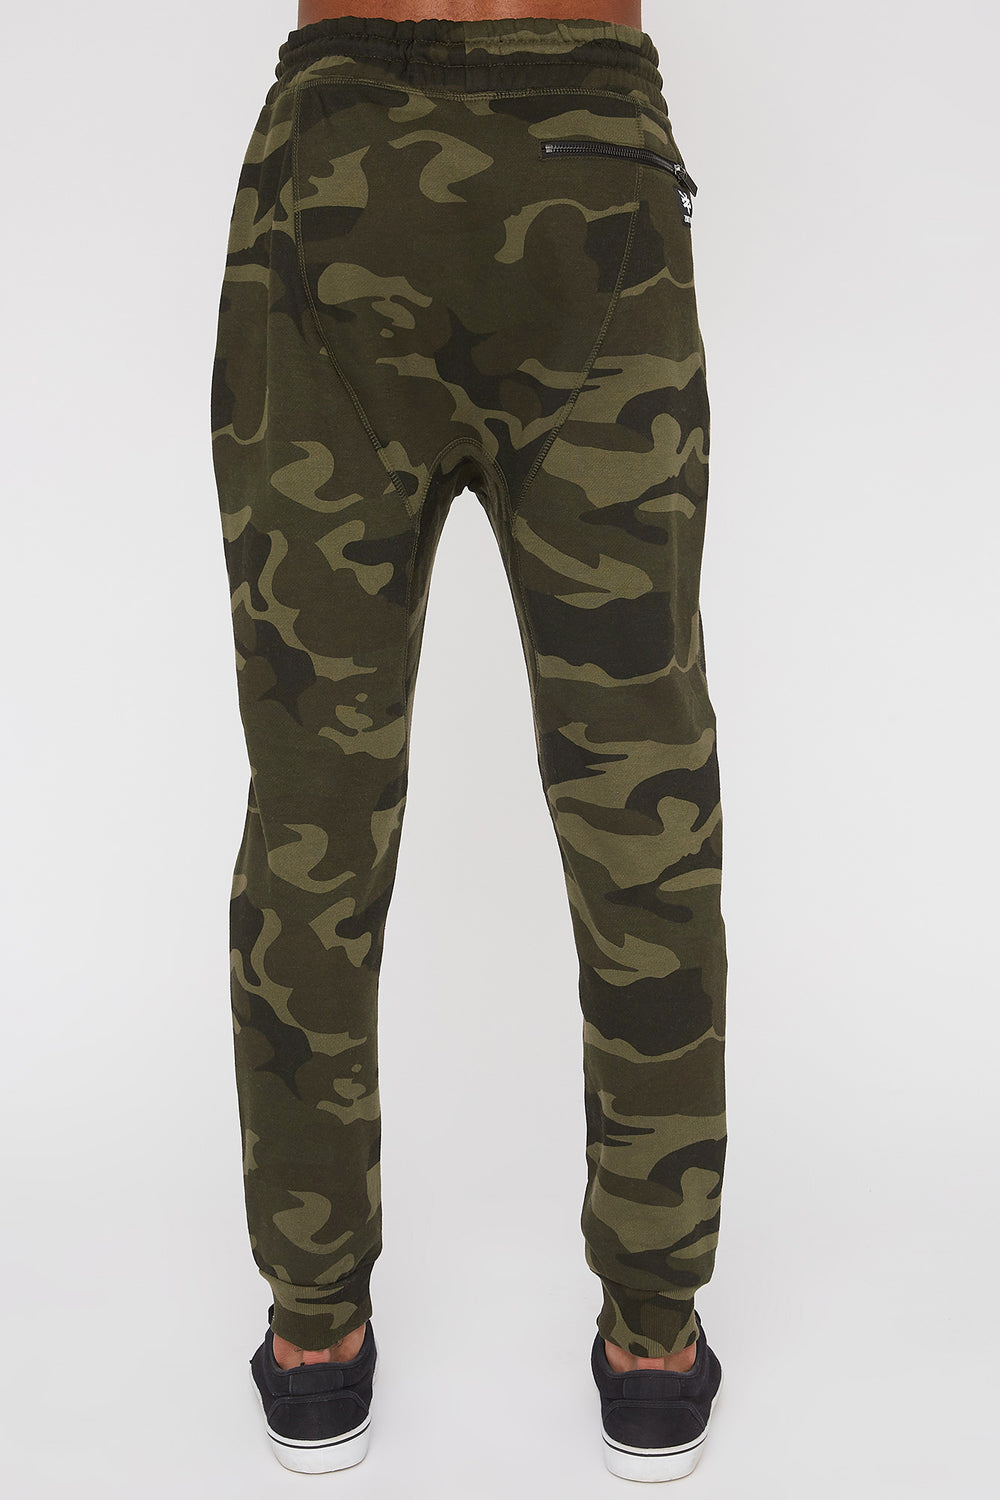 Zoo York Mens 3-Pocket Camo Jogger Camouflage